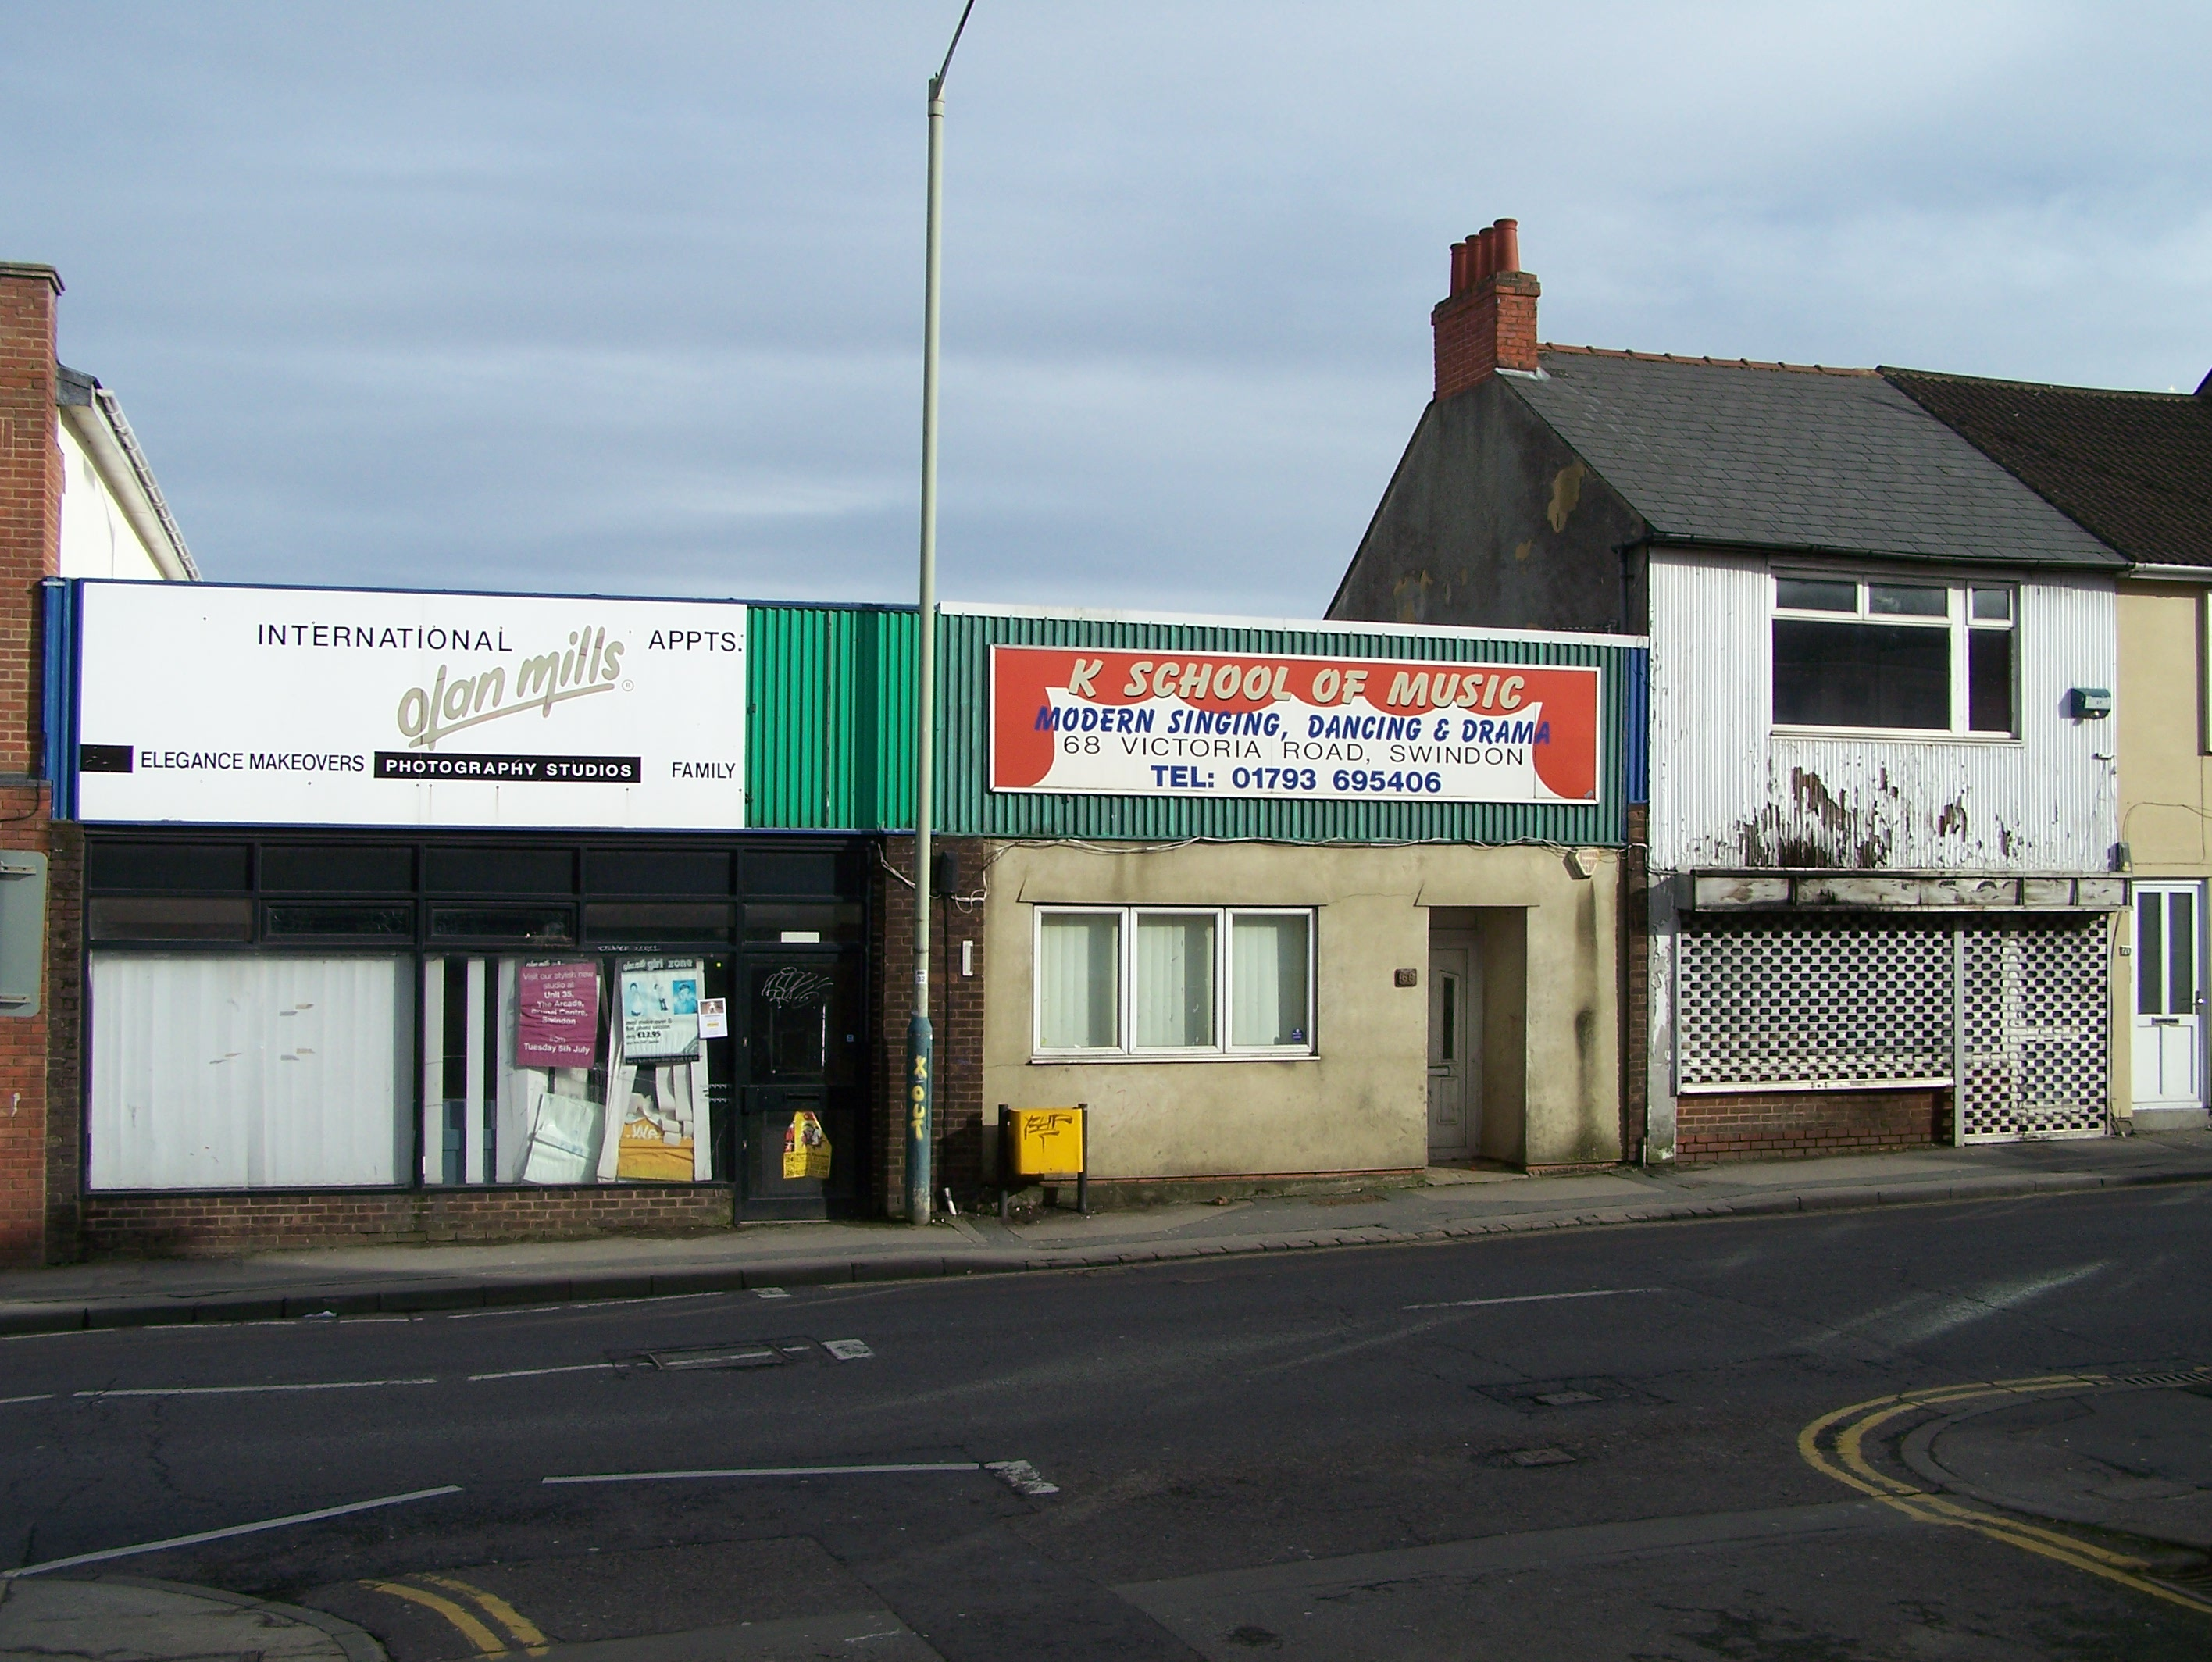 Commercial Property For Sale Old Town Swindon